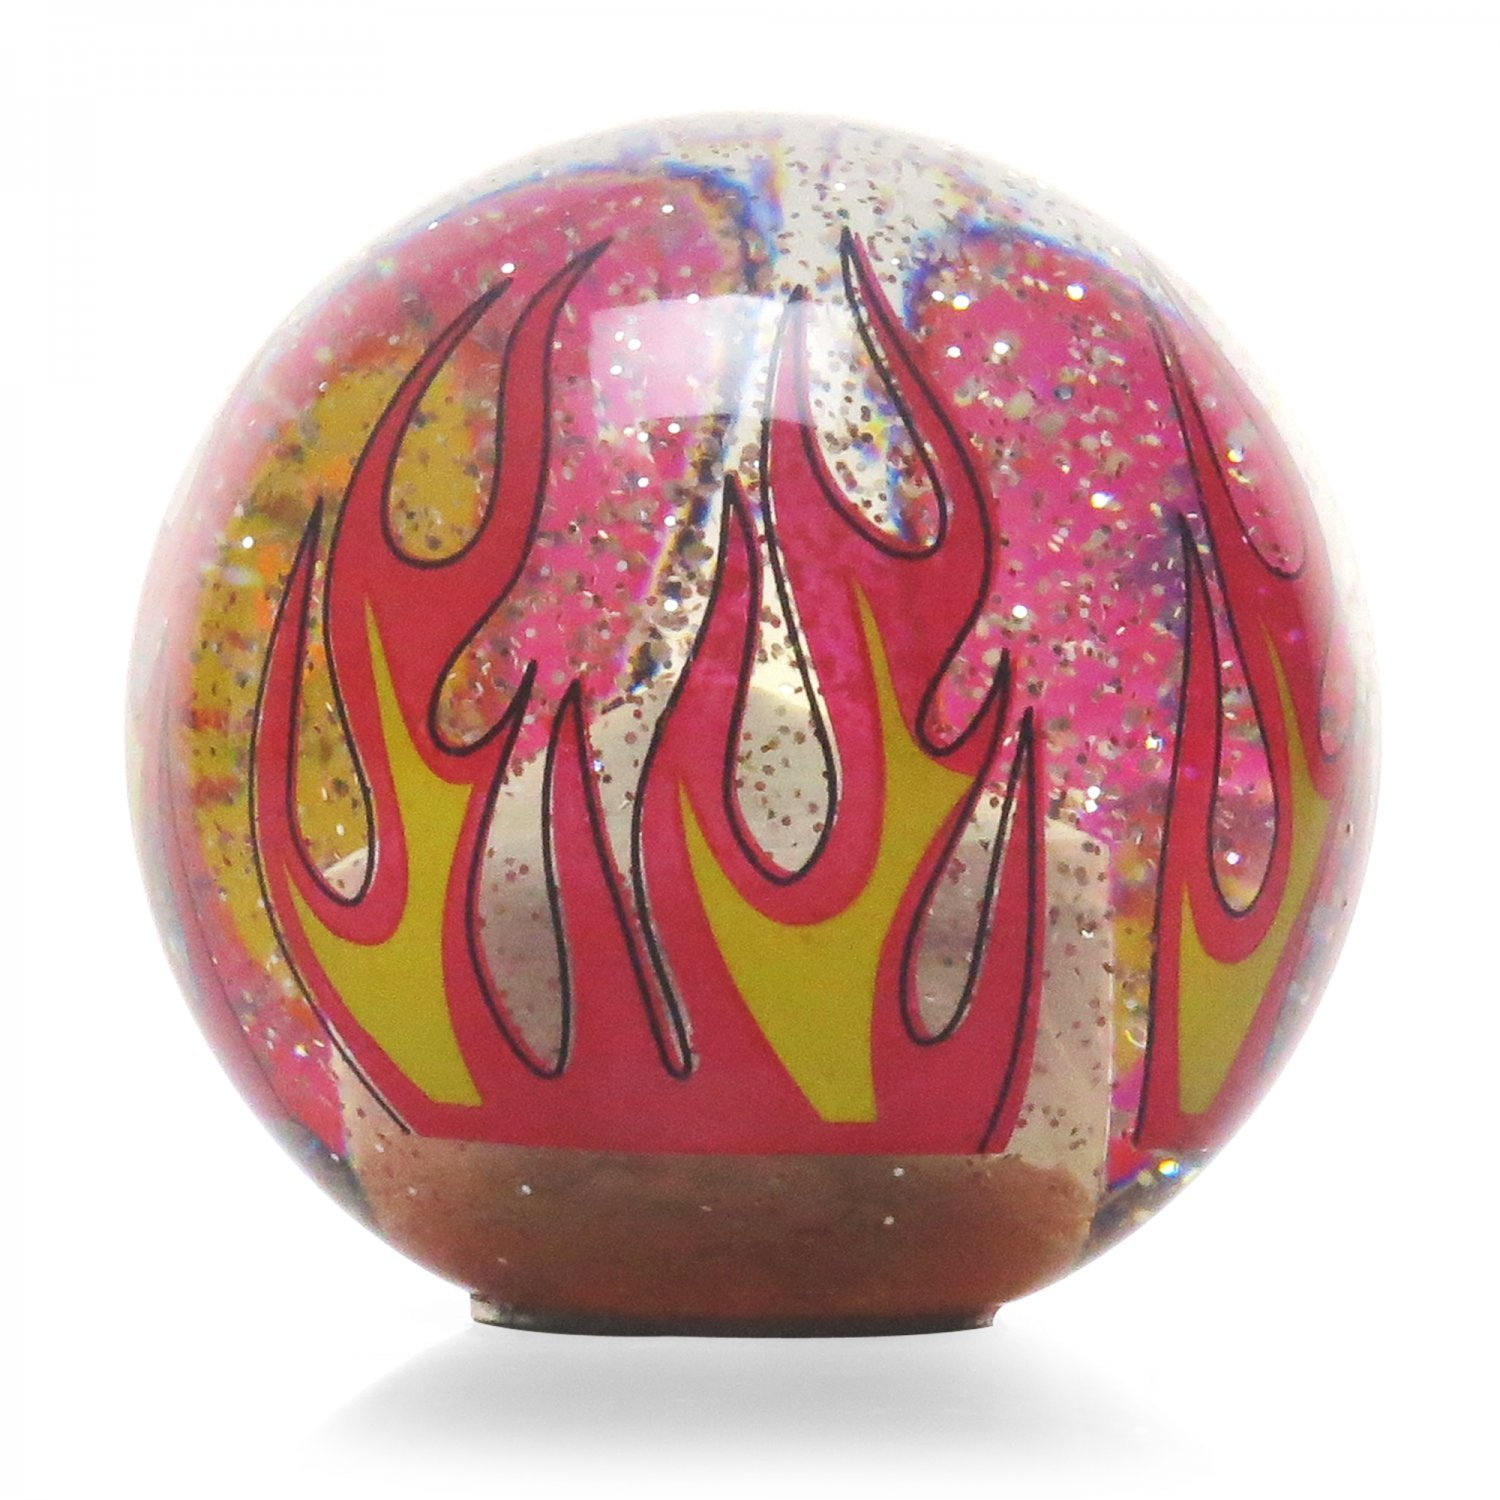 American Shifter 295520 Shift Knob Orange Real Men Drive Stick Clear Flame Metal Flake with M16 x 1.5 Insert